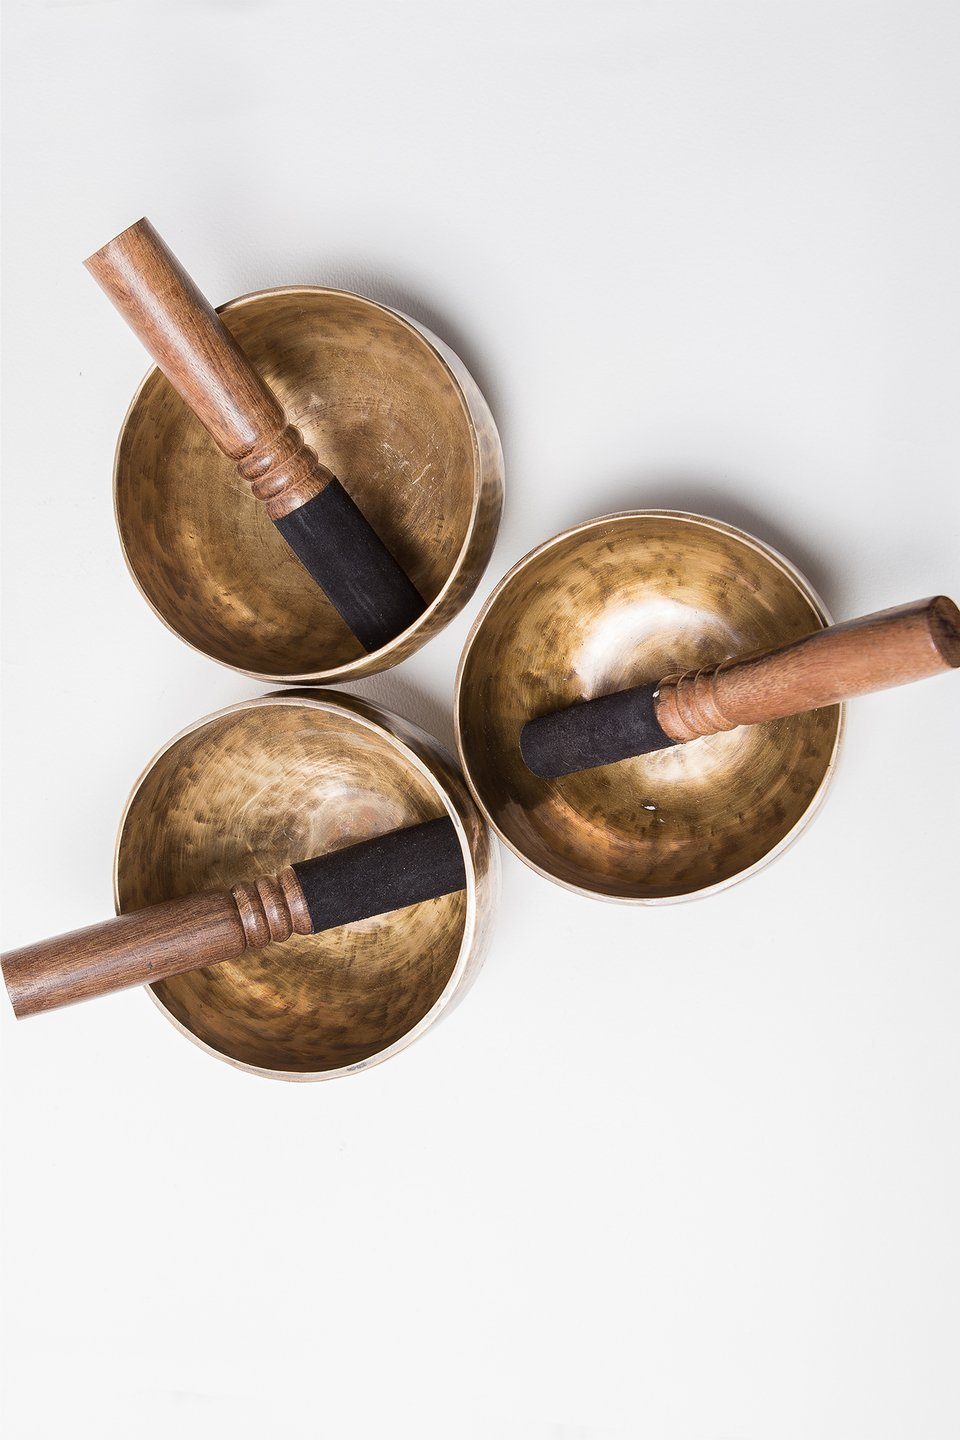 Singing Bowl 8 with Suede Mallet and Striker